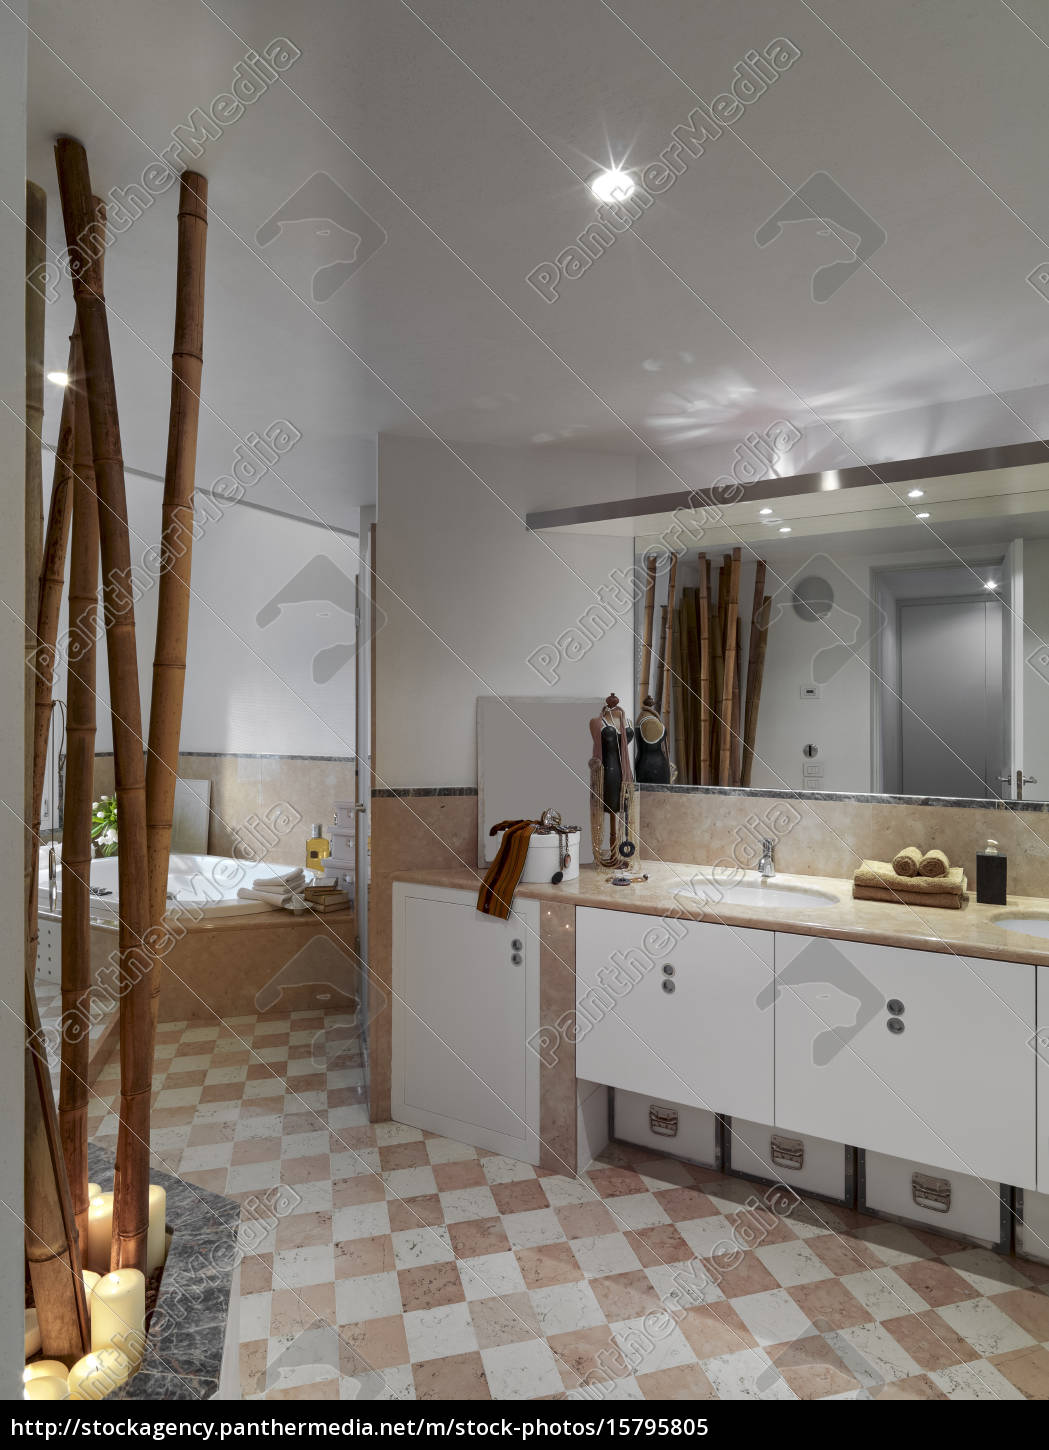 interior, view, of, a, classic, bathroom - 15795805